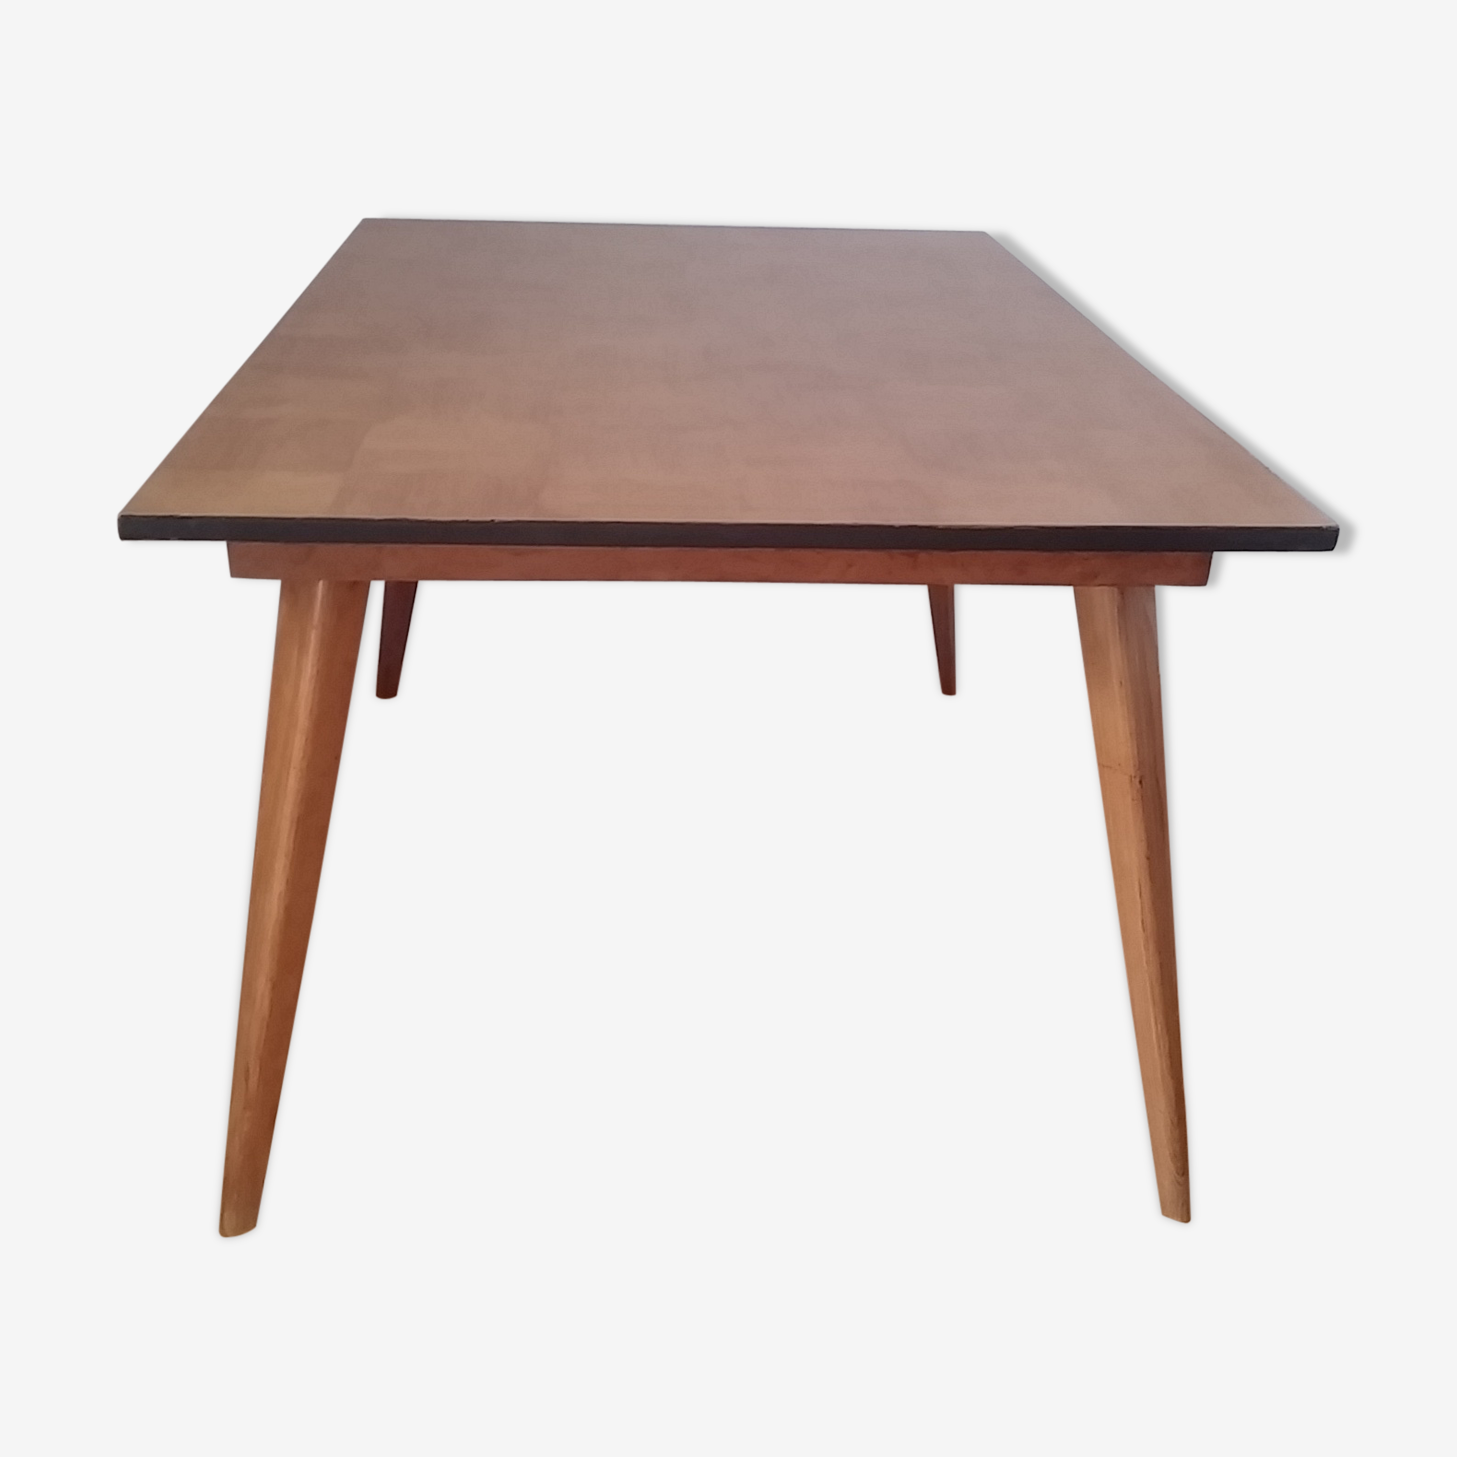 Table rectangulaire en bois scandinave